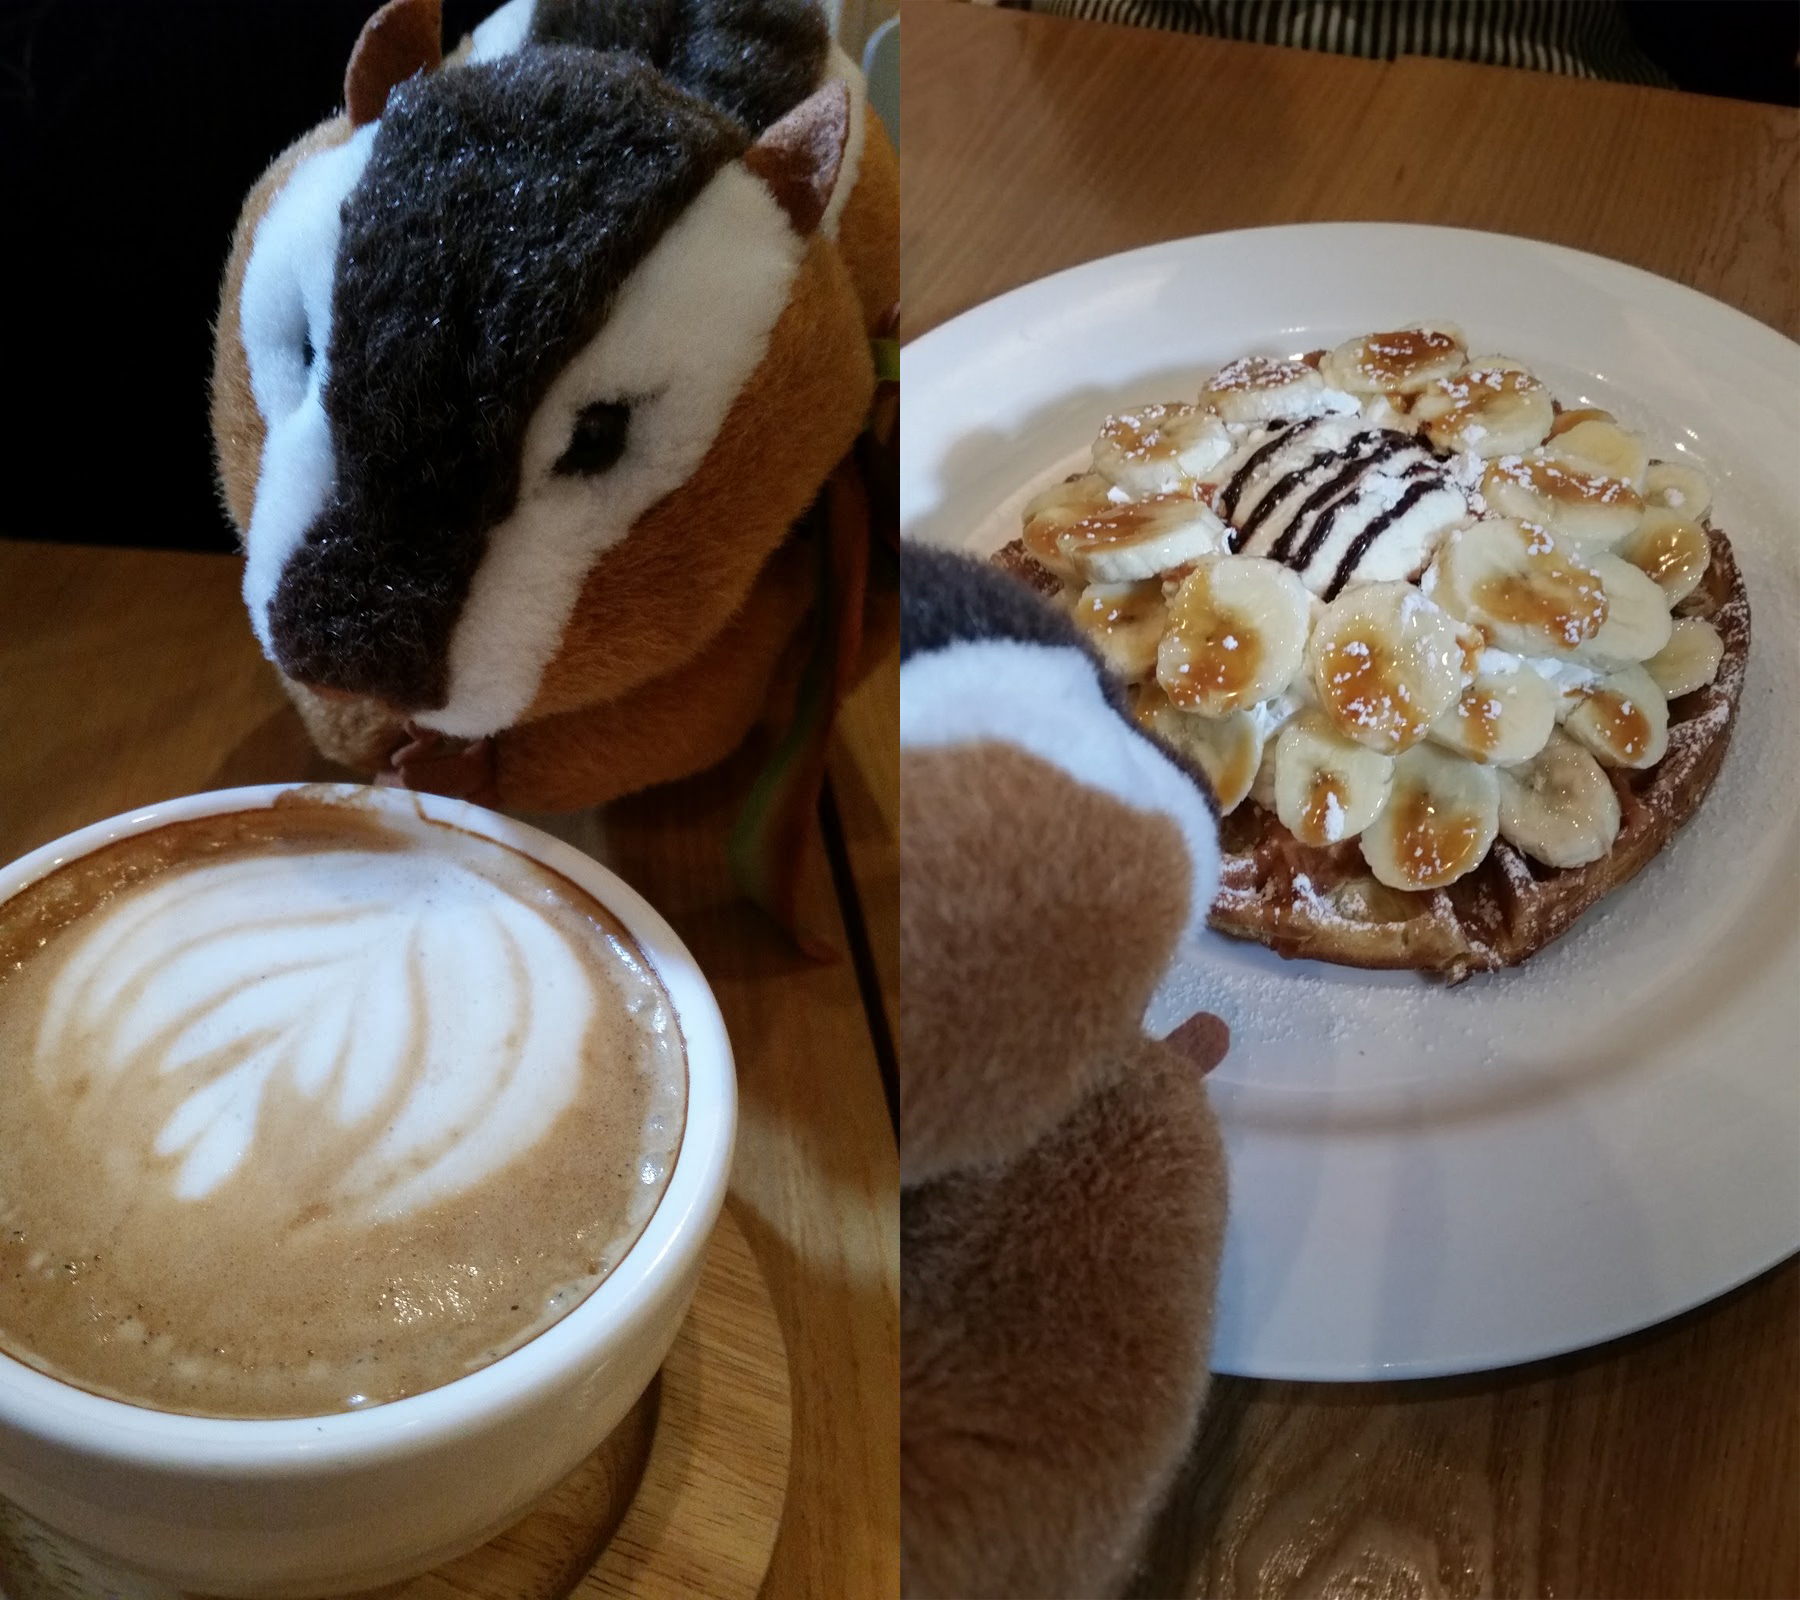 Hongdae - Thanks Nature Latte and Waffle